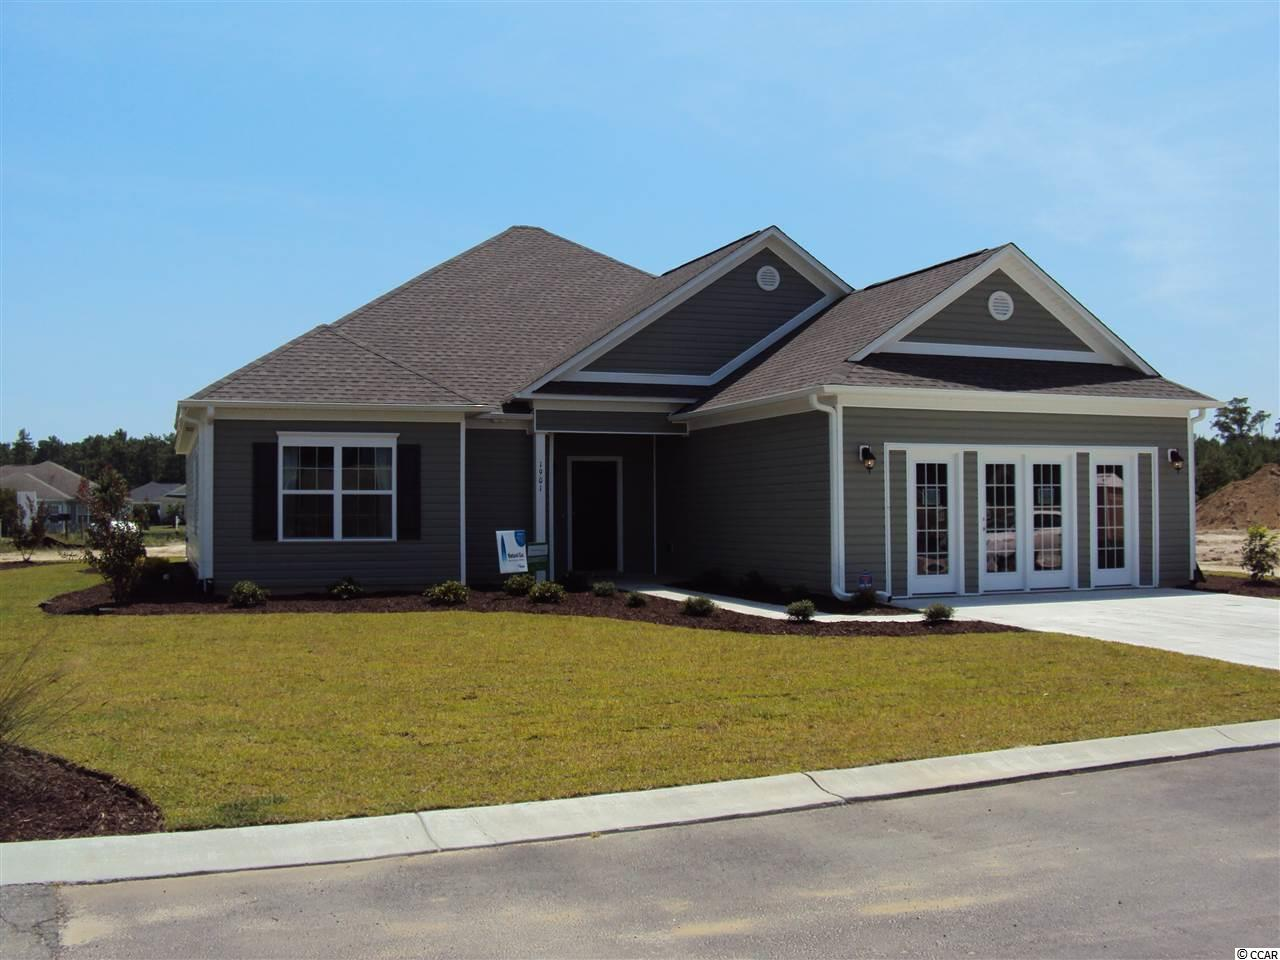 Homes for sale plantation pines longs plantation pines for Plantation houses for sale in the south